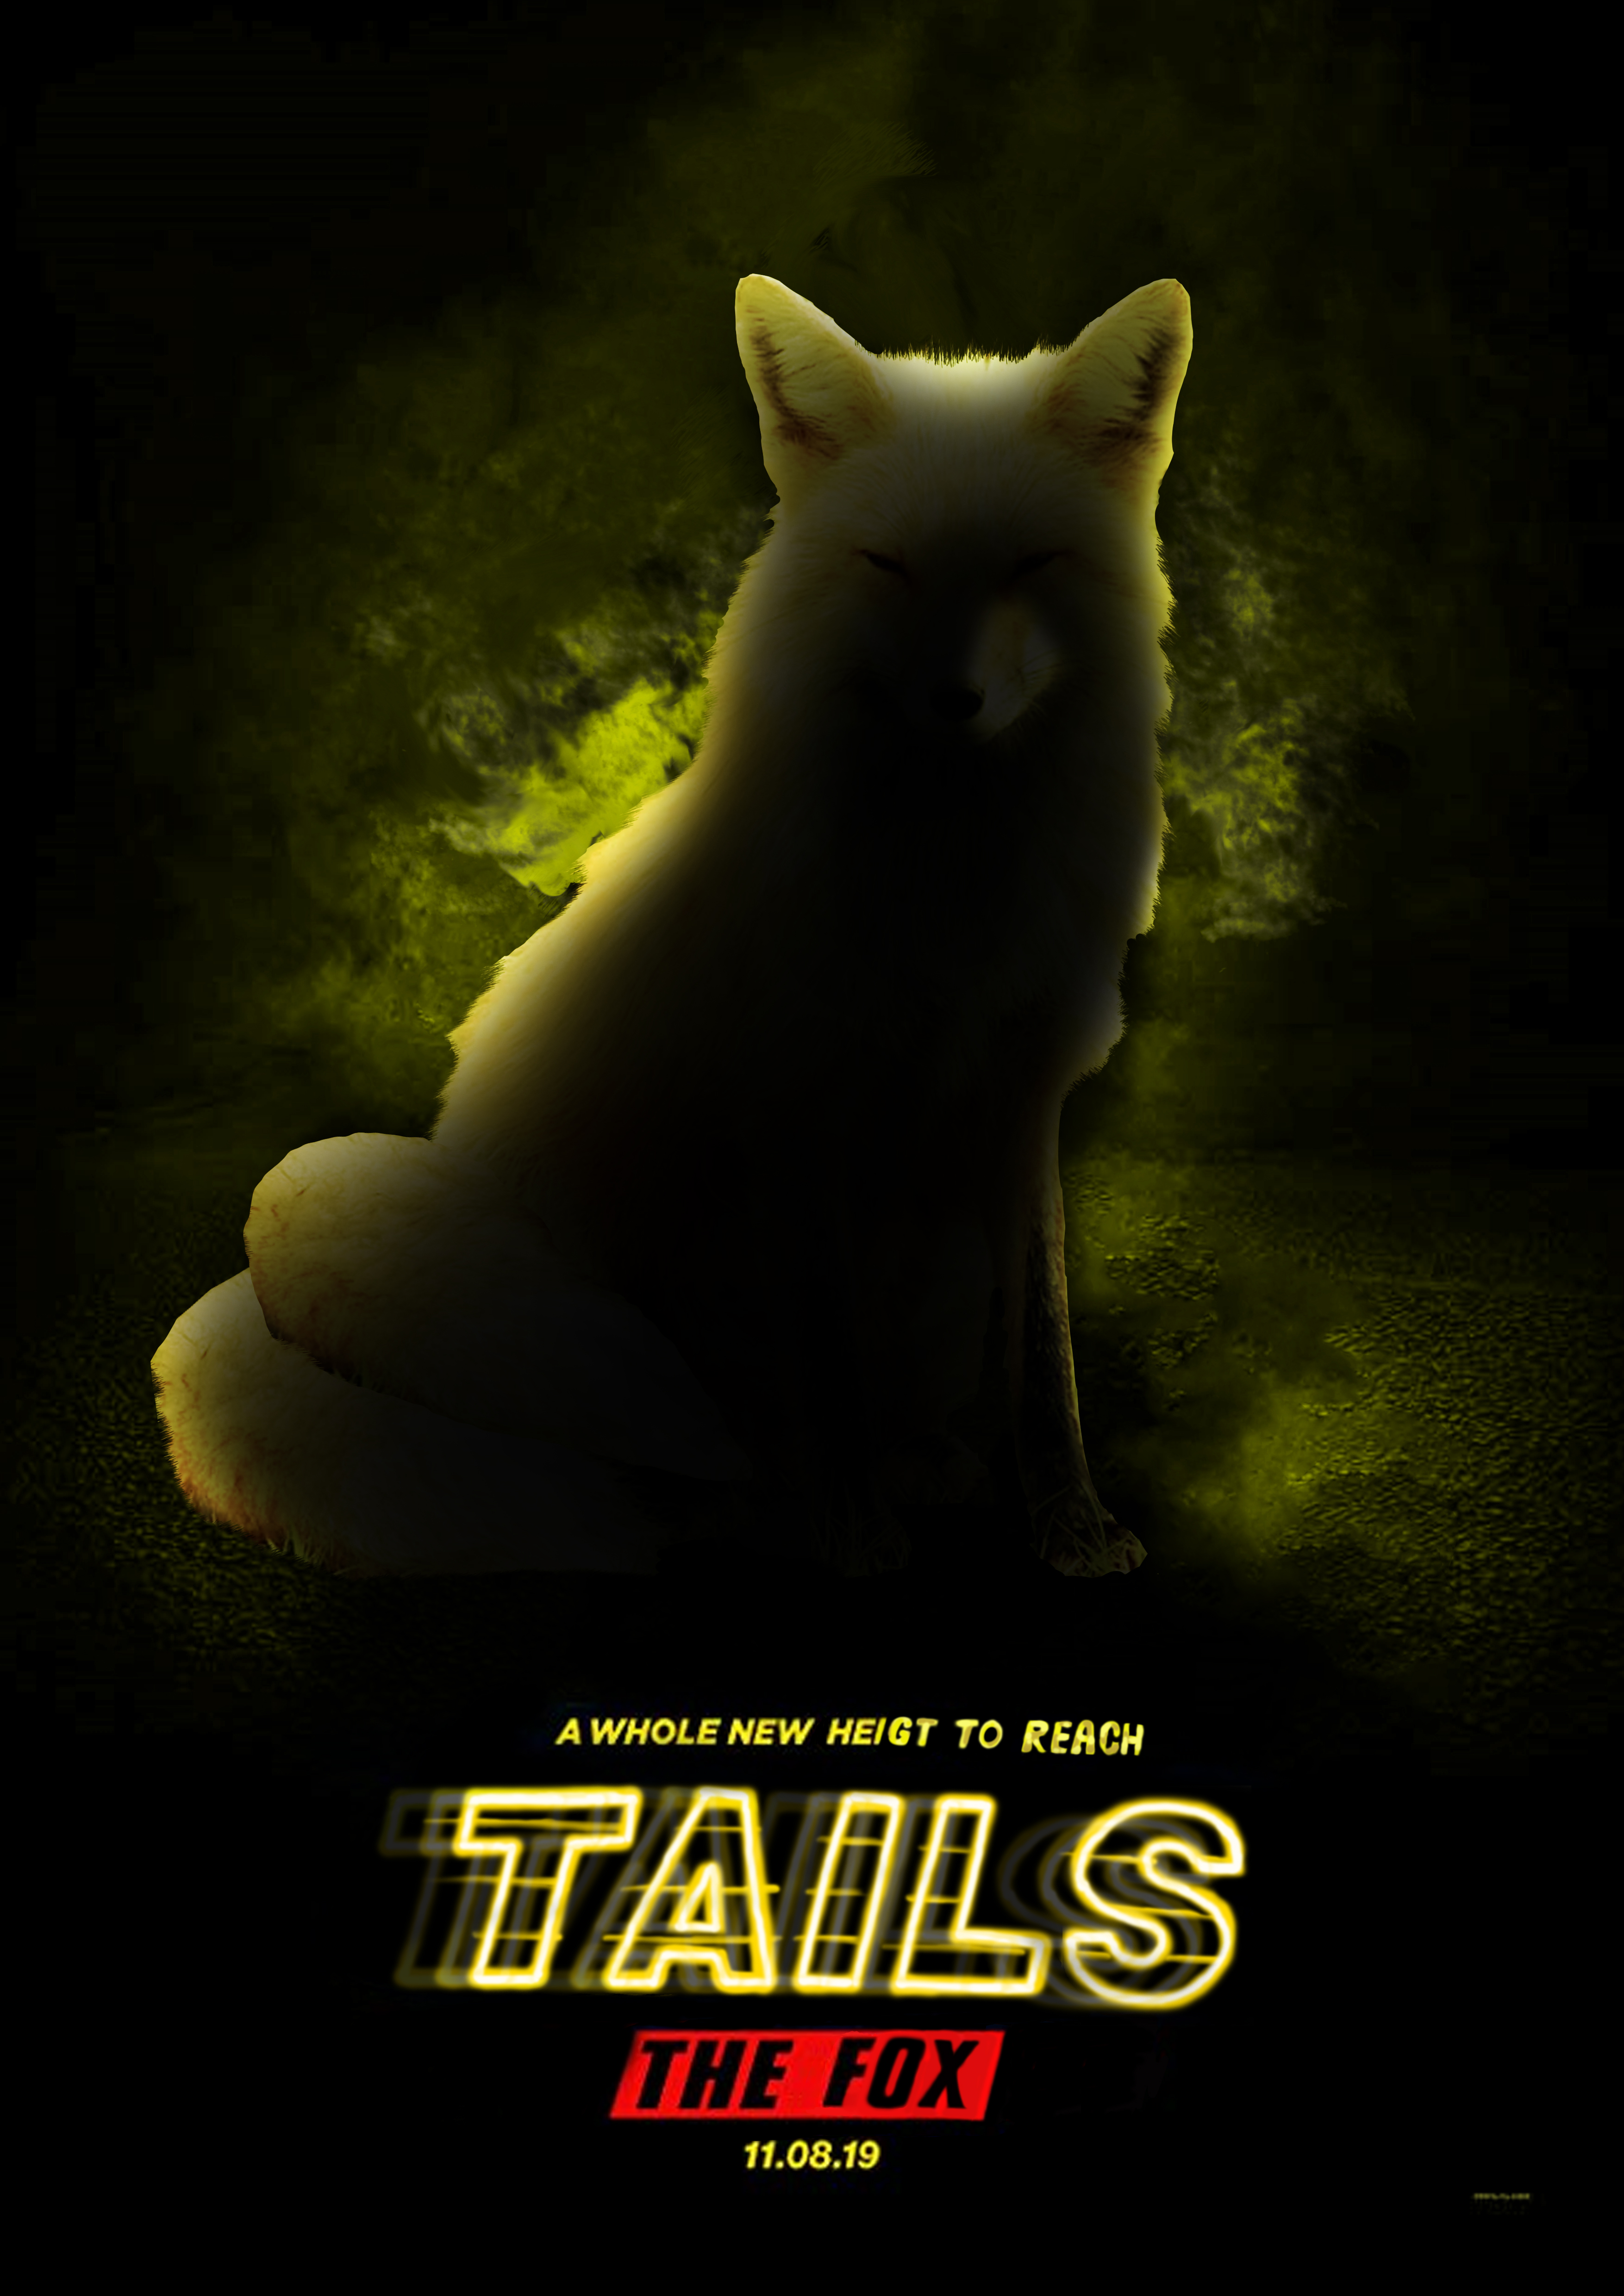 Tails The Fox The Movie Sonic The Hedgehog Movie Poster Parodies Know Your Meme